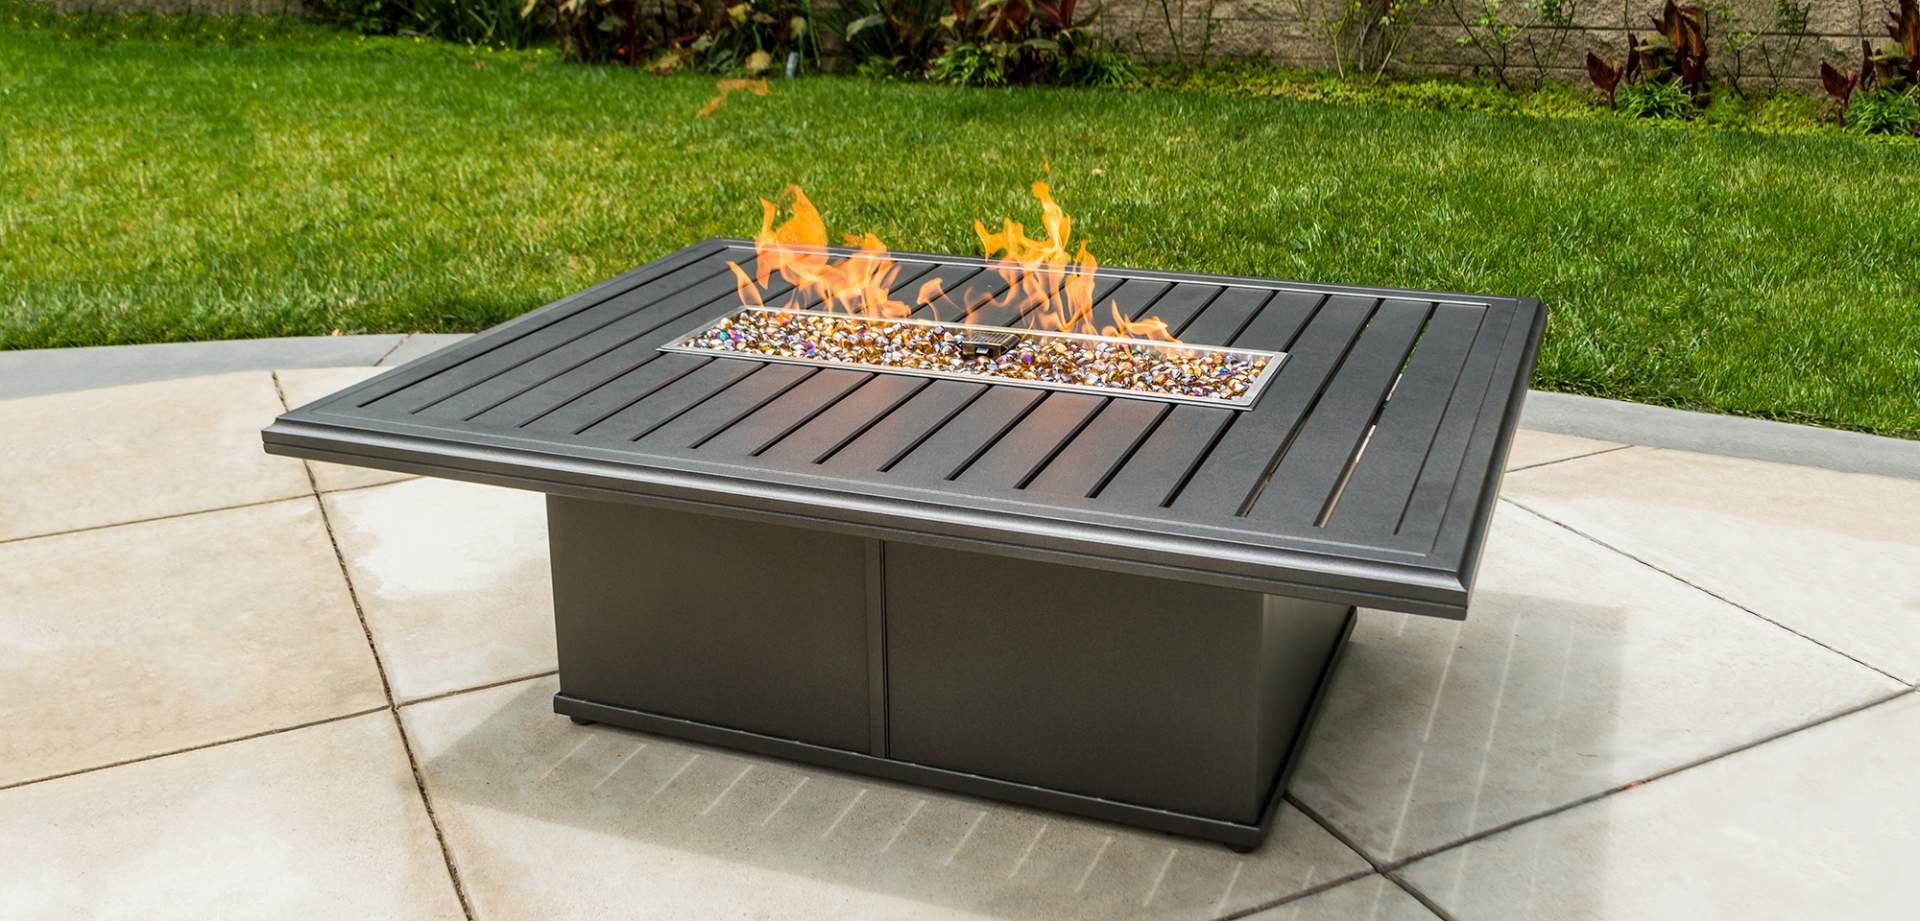 tropitone banchetto fire pit built in ignition location 9647 0 (1)